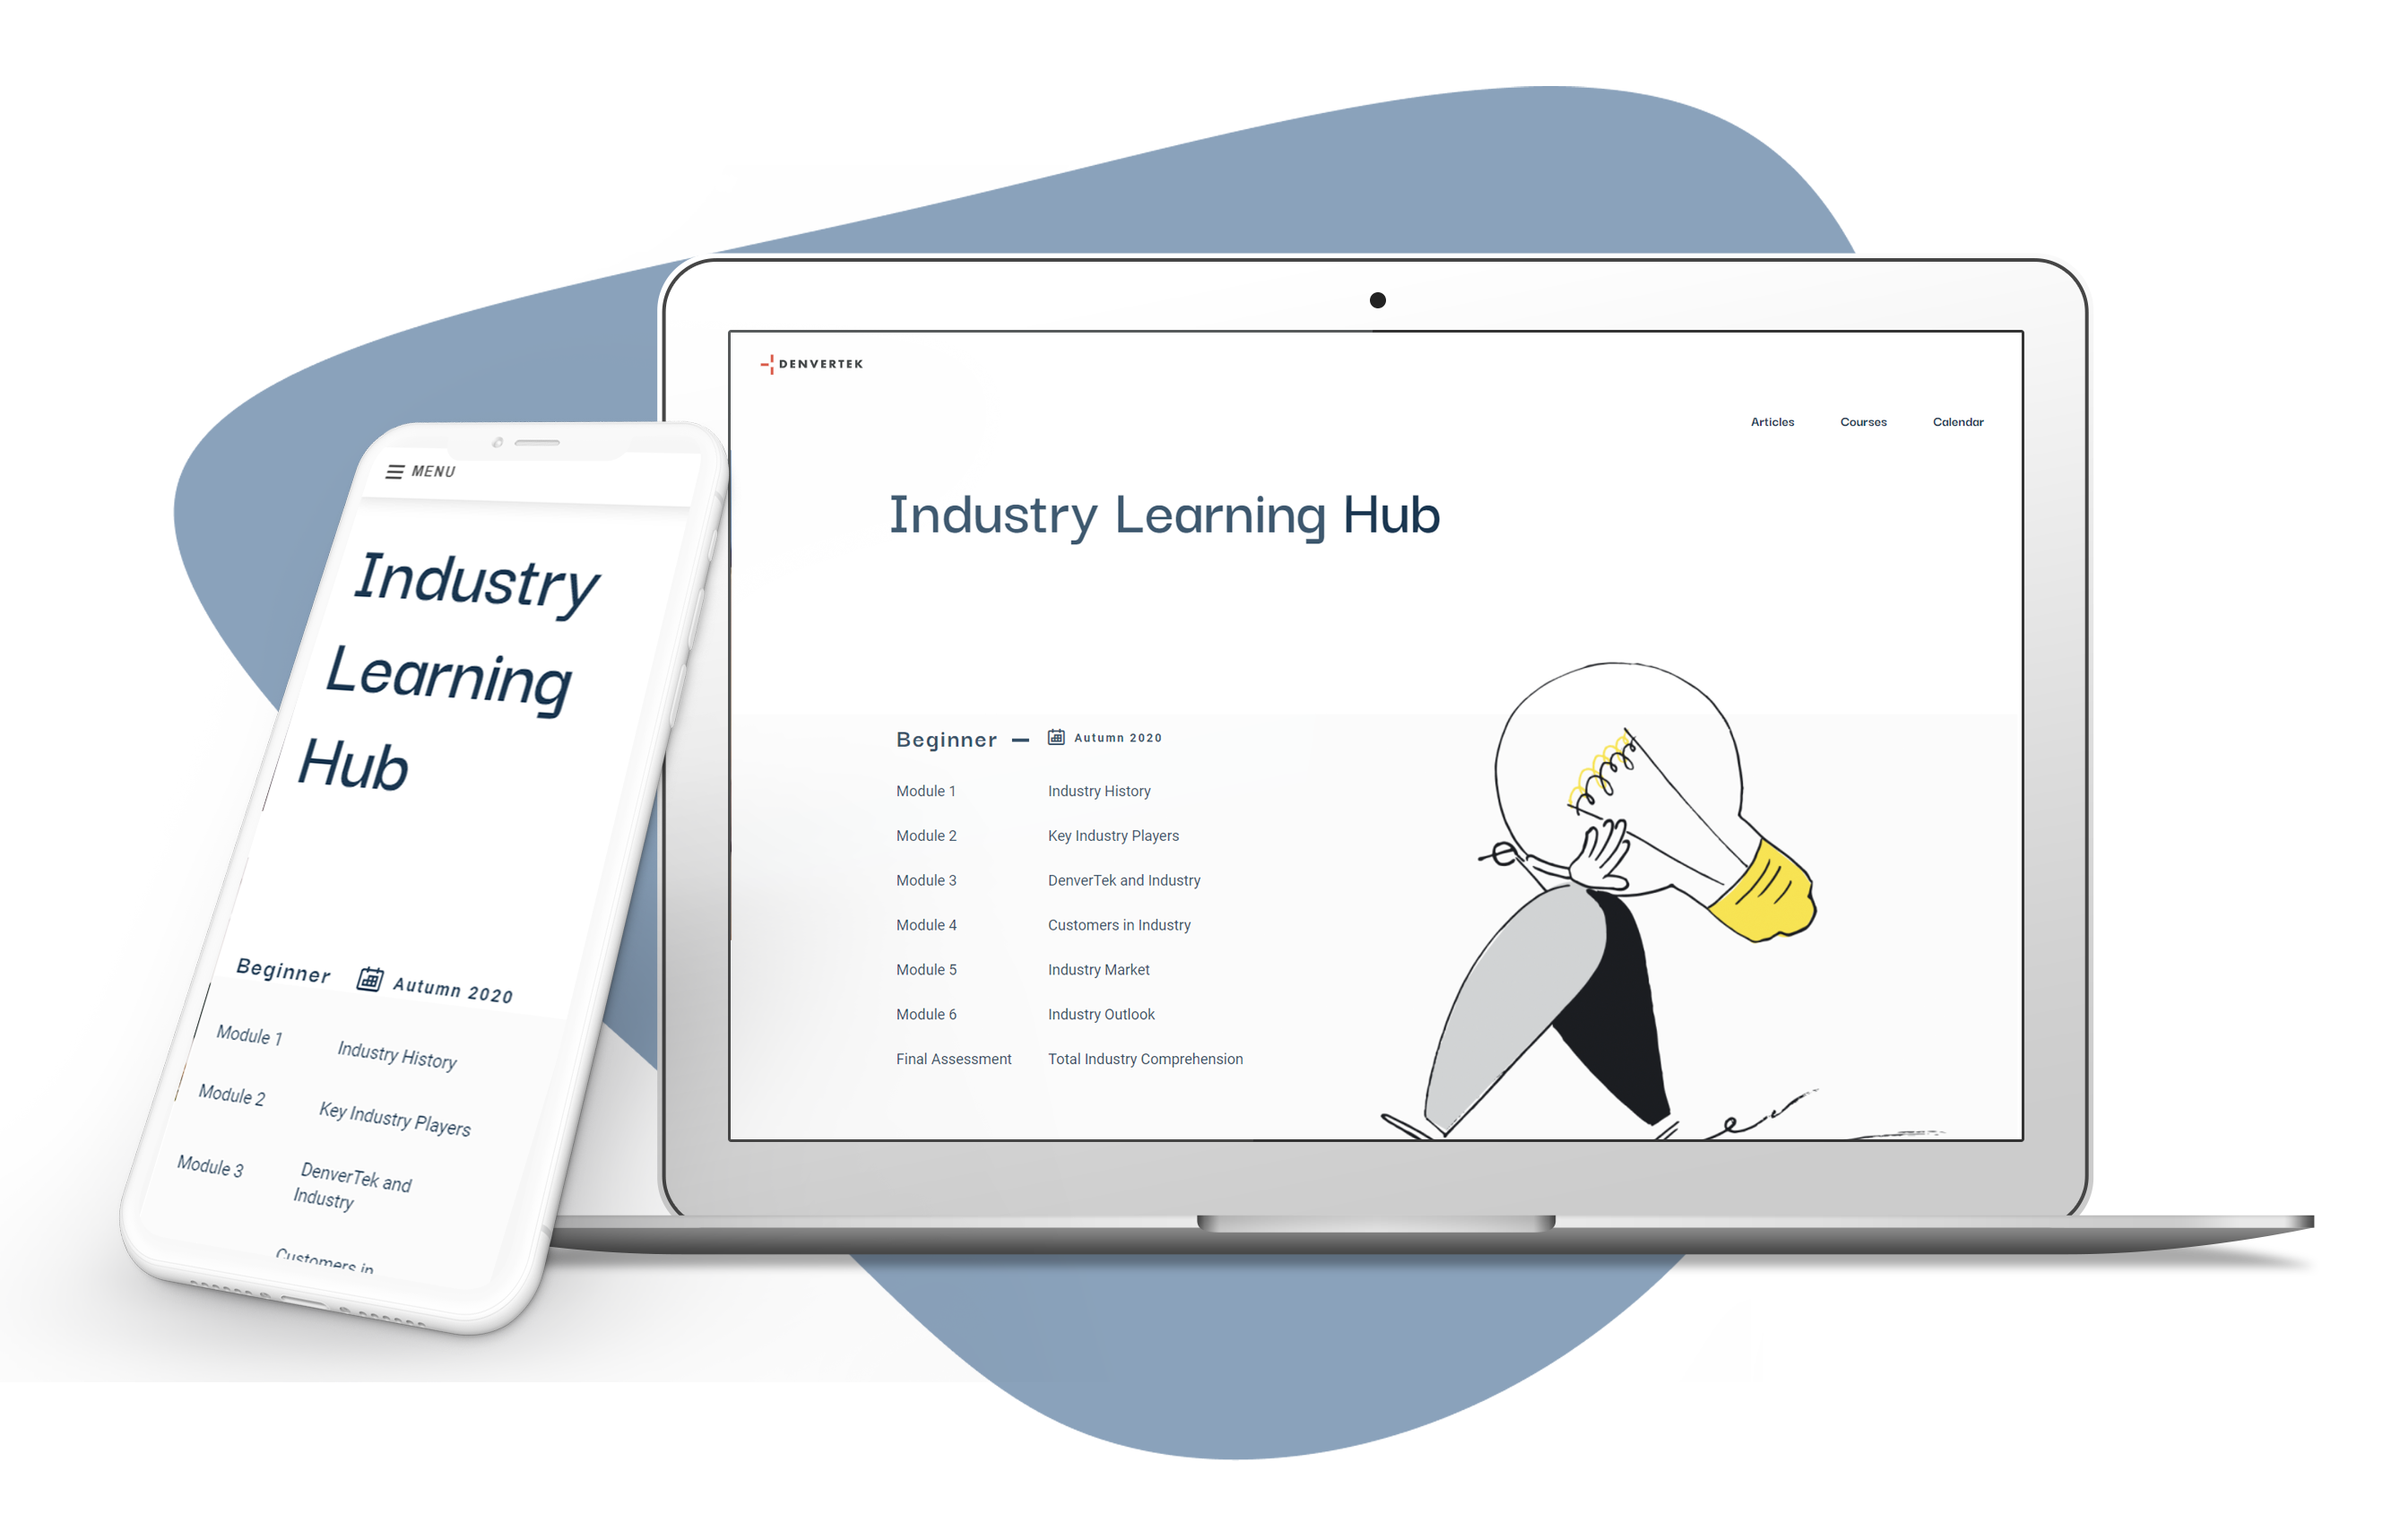 Microsite for online learning experiences